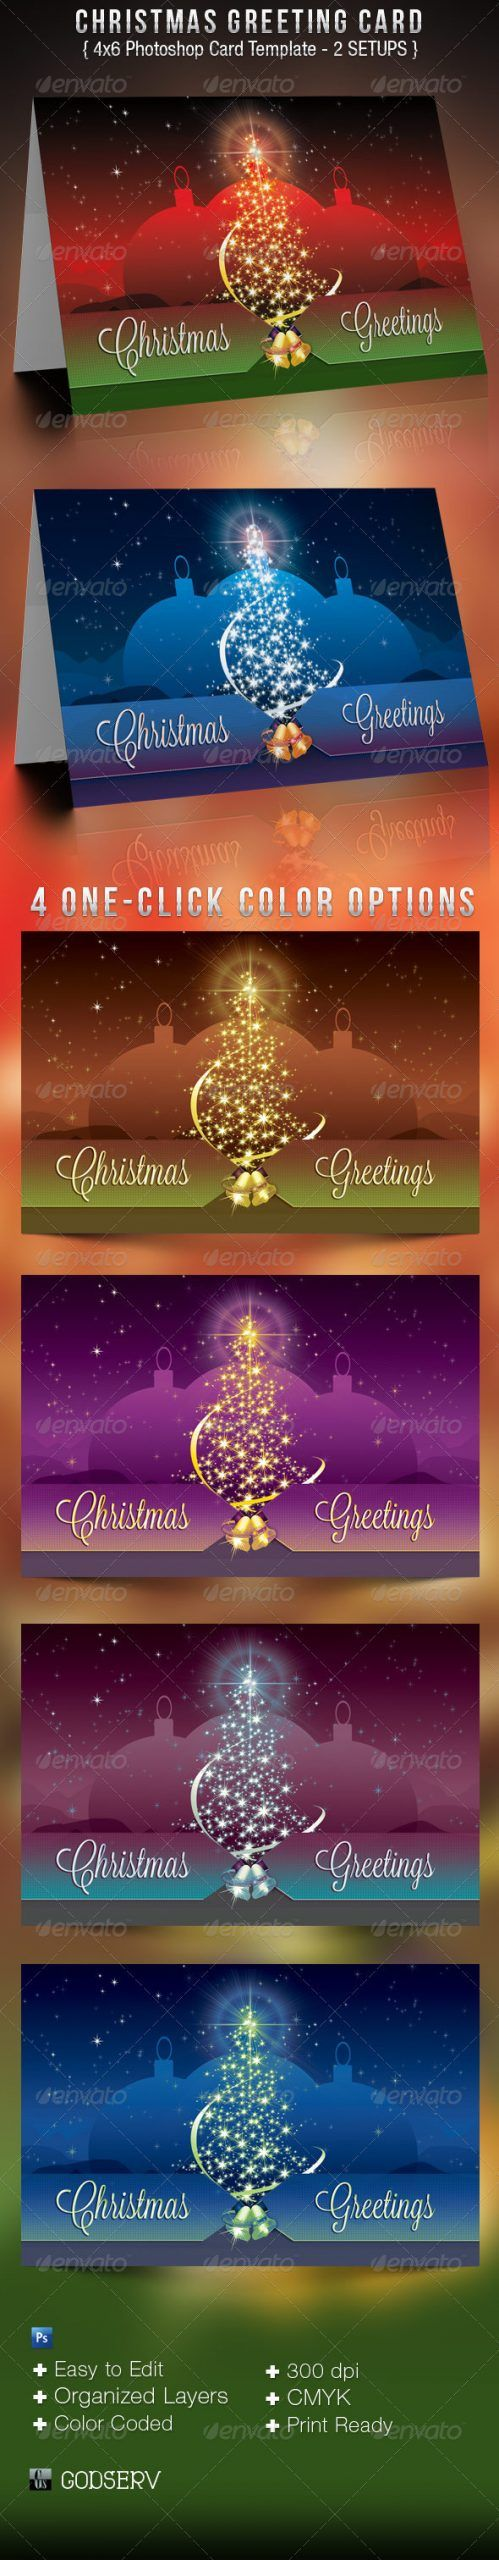 4x6 Christmas Card Templates Lovely Template Card Templates Designs From Grap Christmas Greeting Card Template Greeting Card Template Christmas Card Template